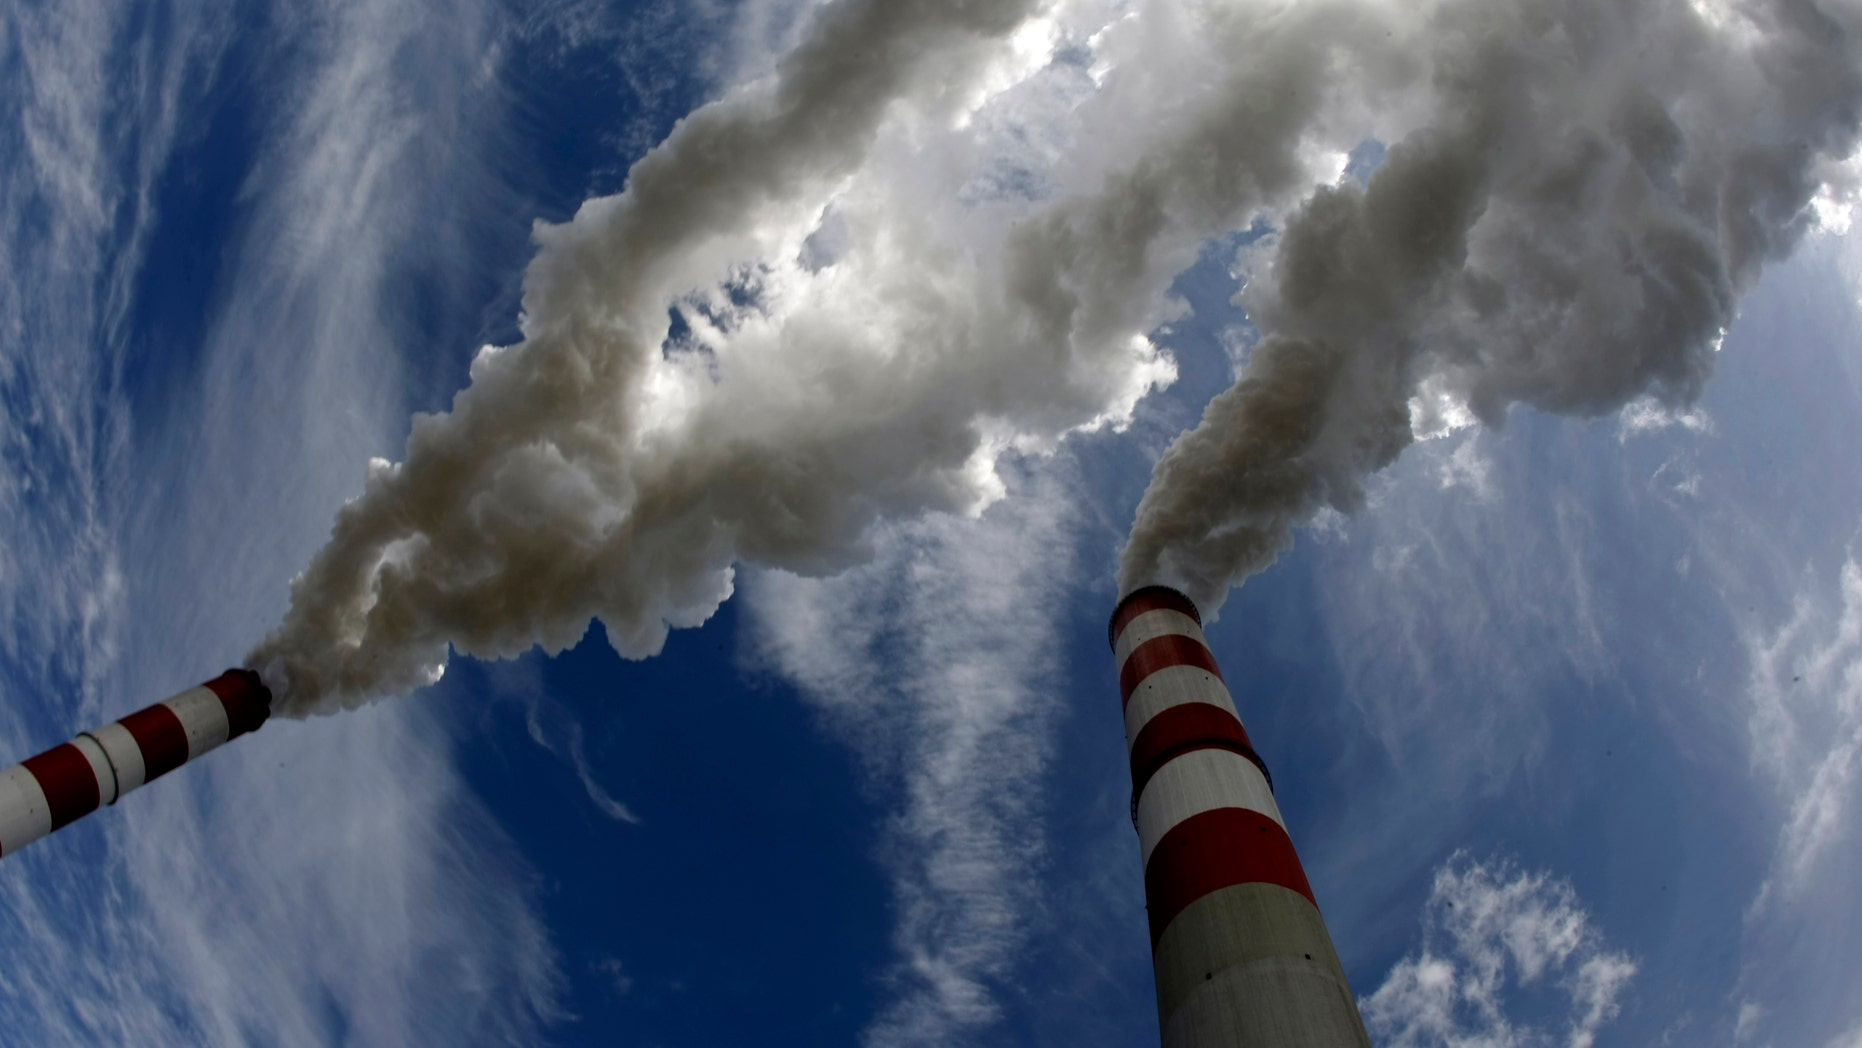 Smoke bellow from the chimneys of Belchatow Power Station, Europe's largest biggest coal-fired power plant, in this May 7, 2009 file photo. The lignite-fired power plant in Belchatow, European Union's biggest polluter, will need to buy up to 20 million tonnes of CO2 emission permits by 2013, its chief Jacek Kaczorowski told Reuters on August 21, 2009. The plant released the equivalent of nearly 31 million tonnes of carbon dioxide into the atmosphere last year, topping by 4 million tonnes its EU-set ceiling as part of the bloc's attempts to curb global warming. To match Interview POLAND-BELCHATOW/    REUTERS/Peter Andrews/Files  (POLAND POLITICS ENVIRONMENT ENERGY BUSINESS) - RTR26ZFI